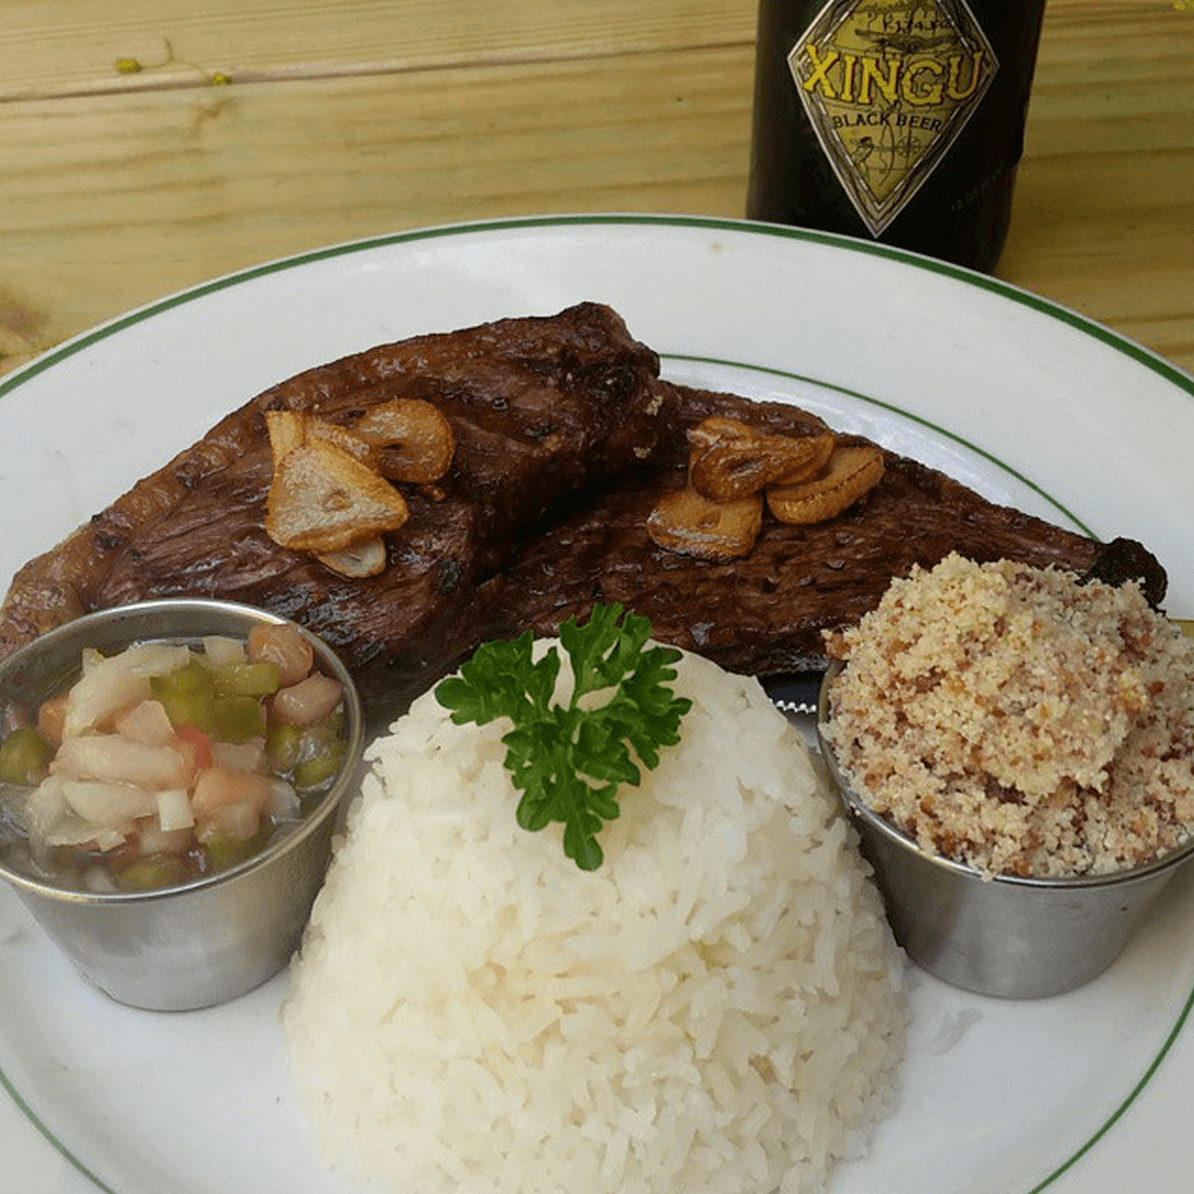 Dining Berimbau do Brasil Restaurant Steak Rice and Farofa